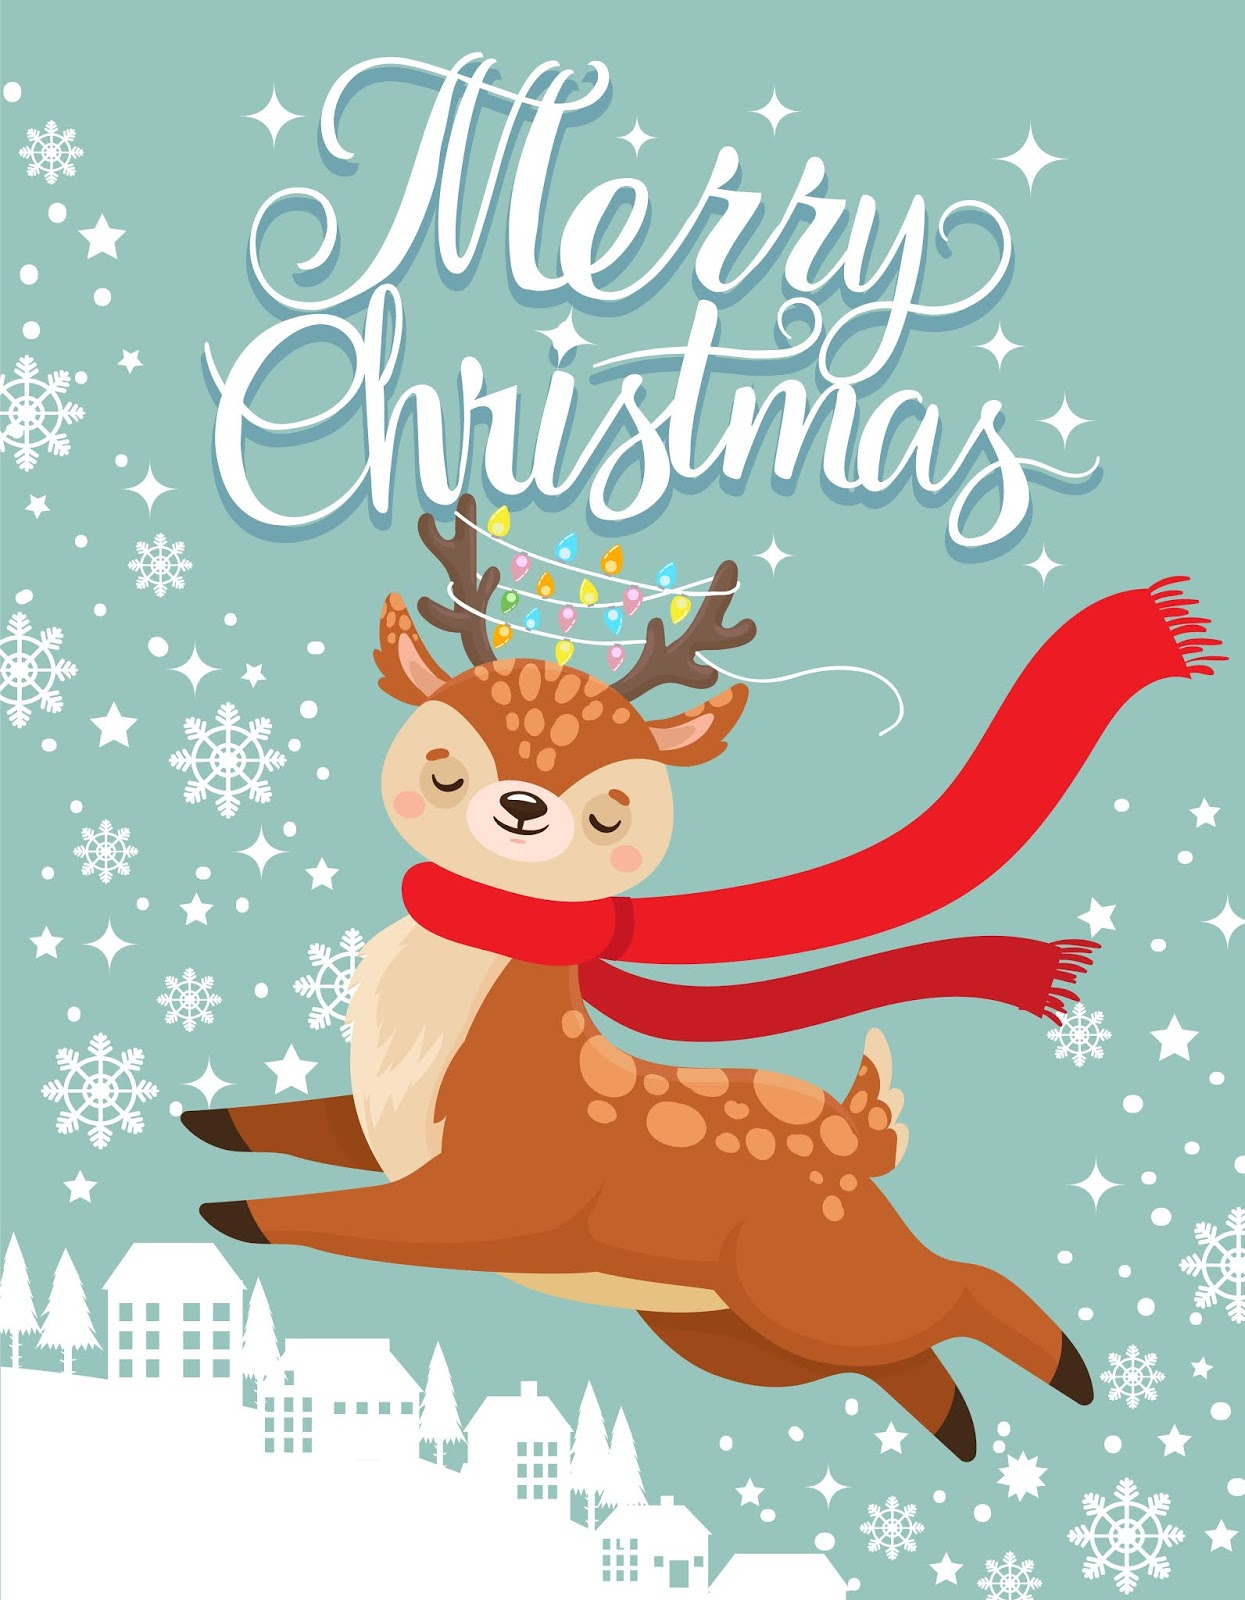 Greeting Card With Xmas Deer Merry Christmas Postcard Cute Fawn Winter Holidays Cartoon Vector Illustration Free Download Vector CDR, AI, EPS and PNG Formats